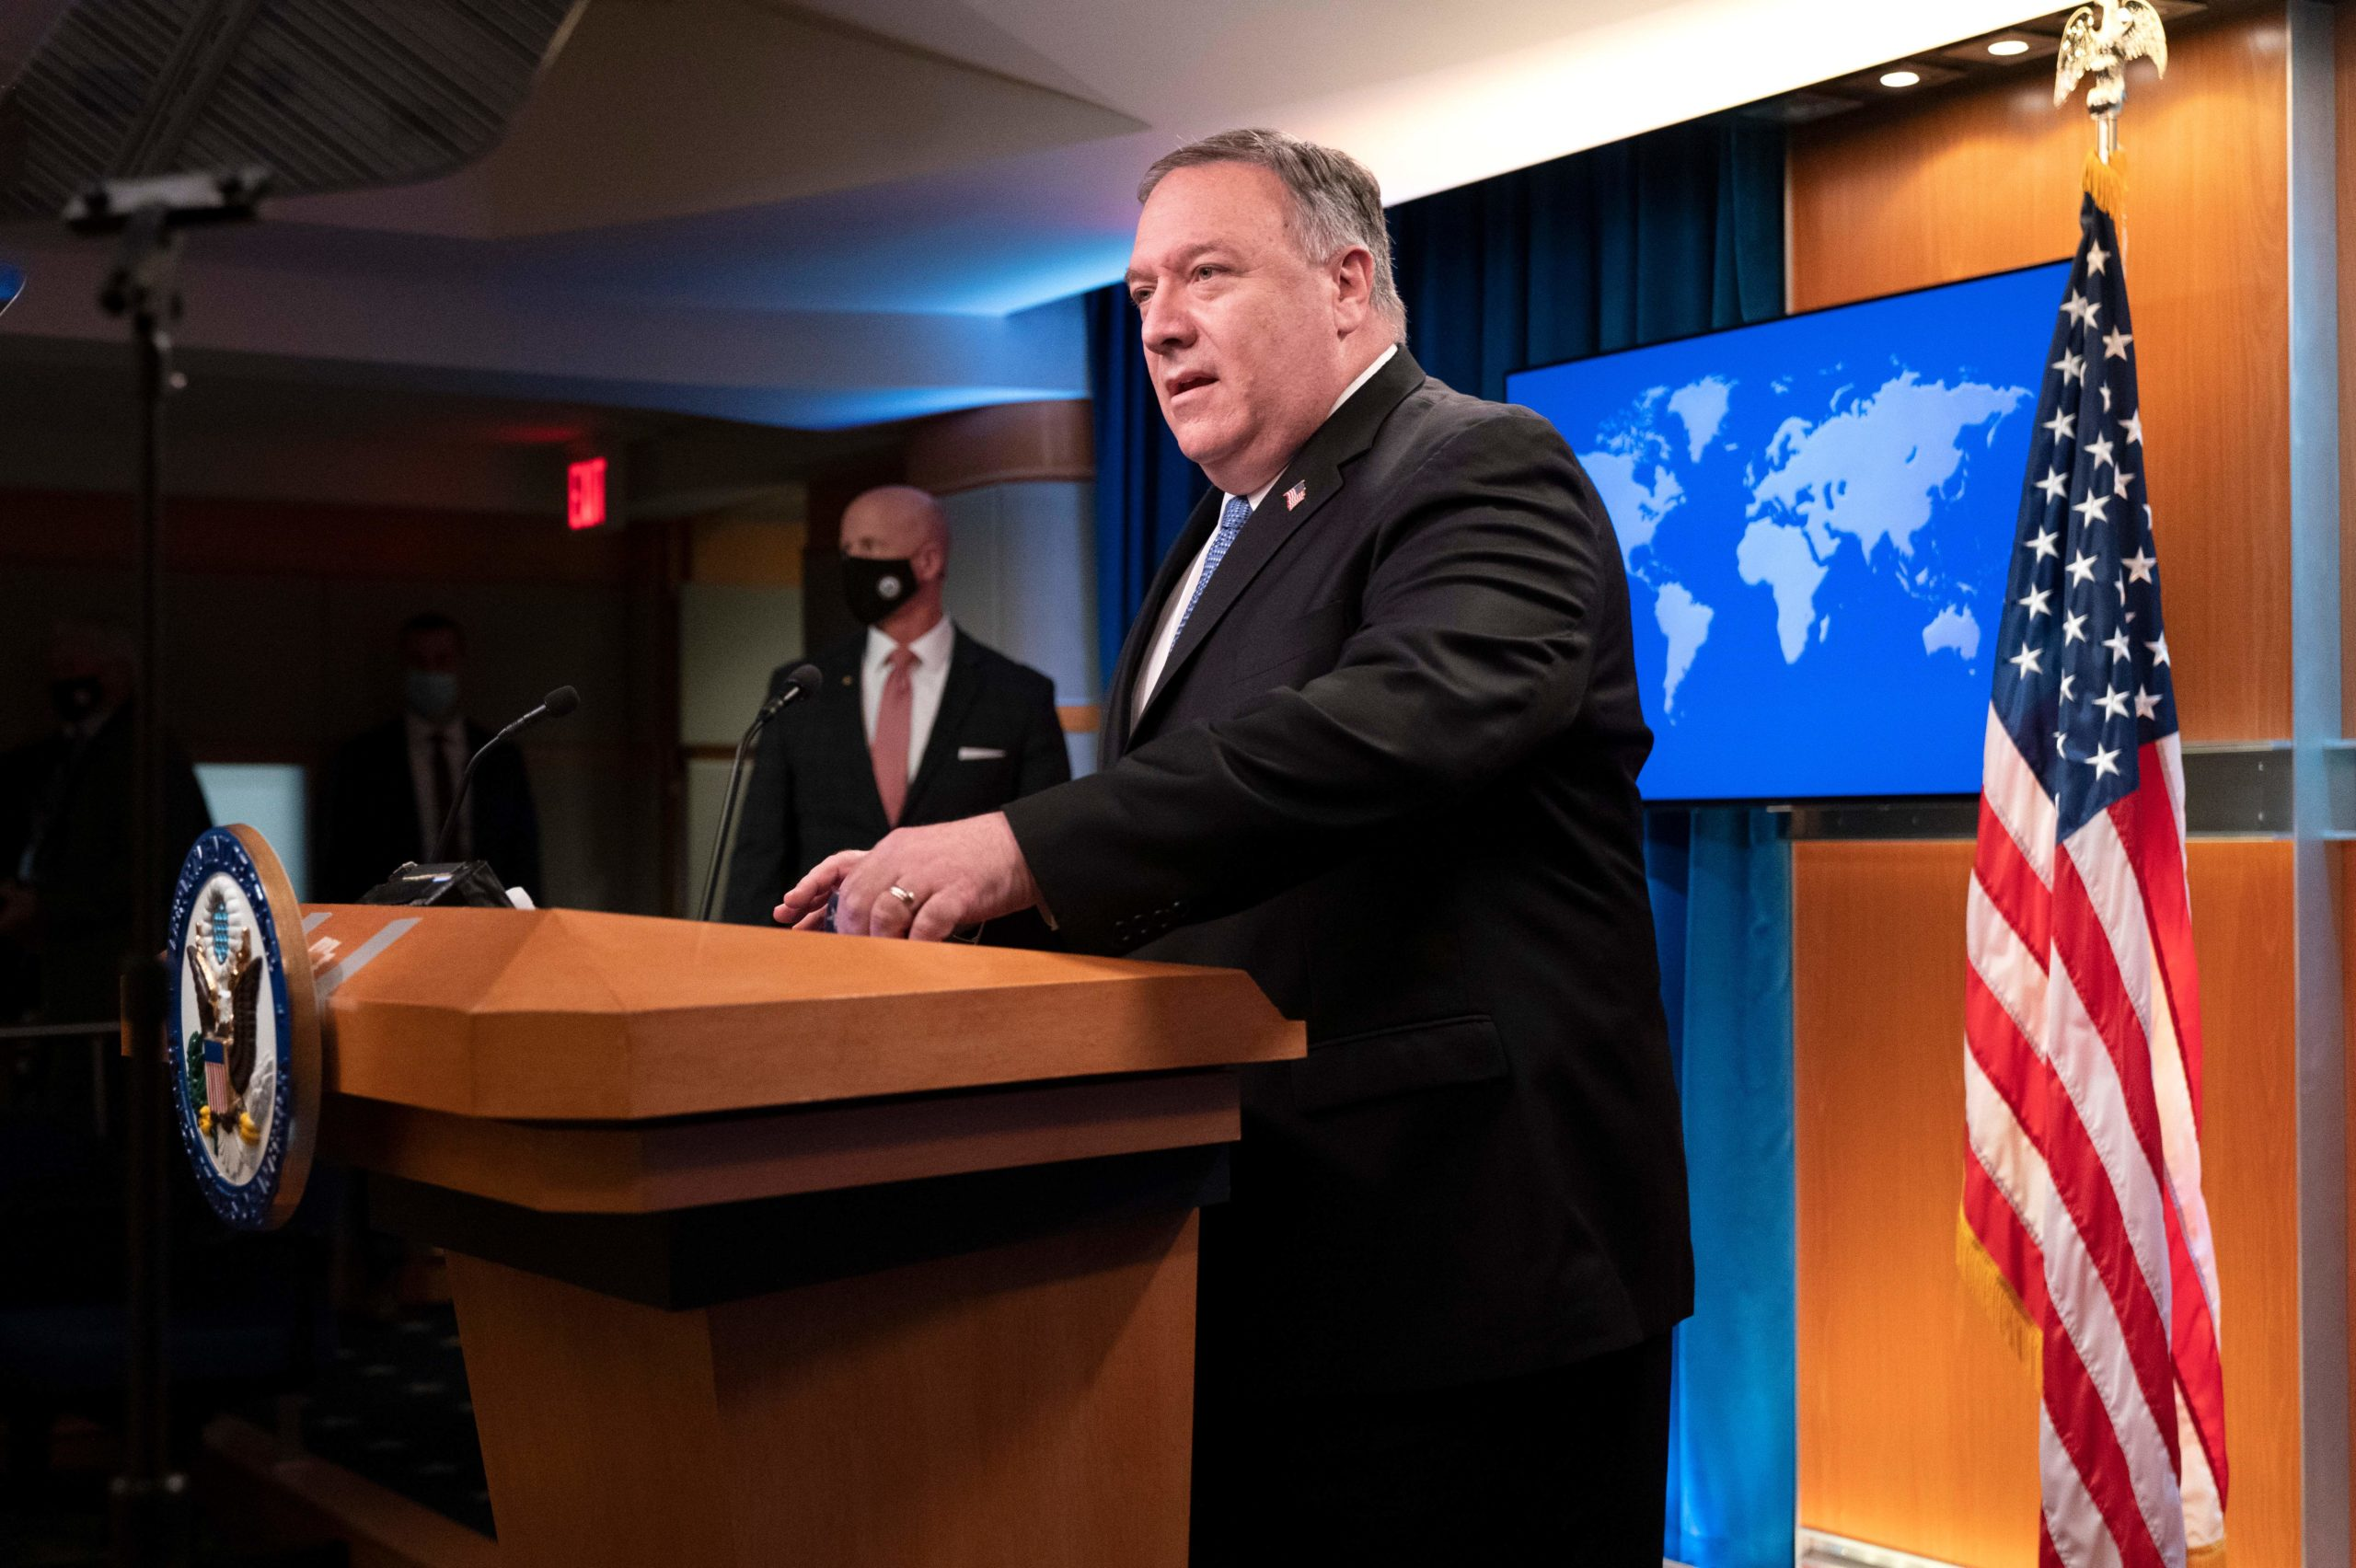 US Secretary of State Mike Pompeo speaks during a media briefing, on November 10, 2020, at the State Department in Washington,DC. (JACQUELYN MARTIN/POOL/AFP via Getty Images)